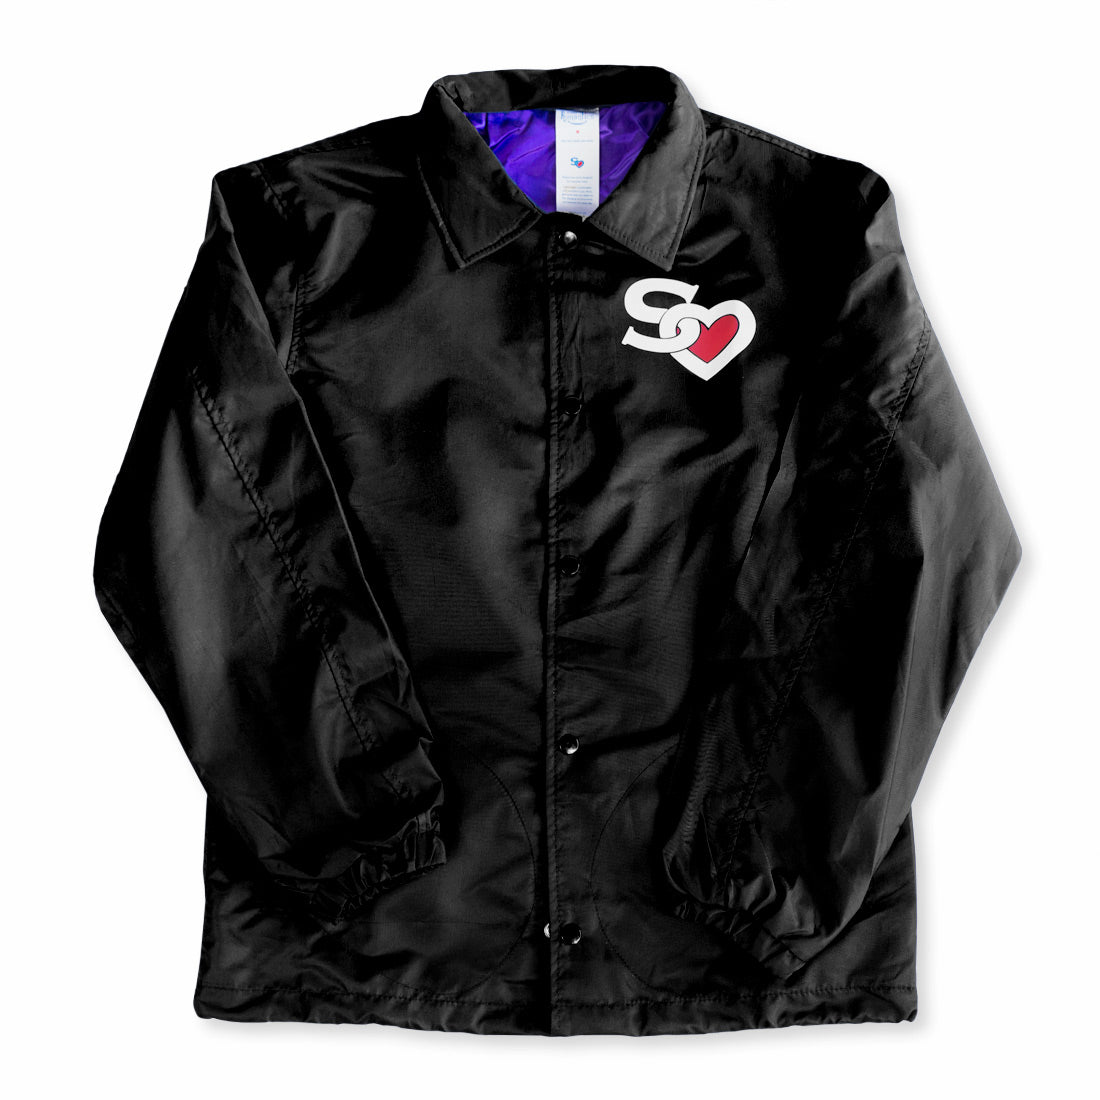 Blackett Team Jacket